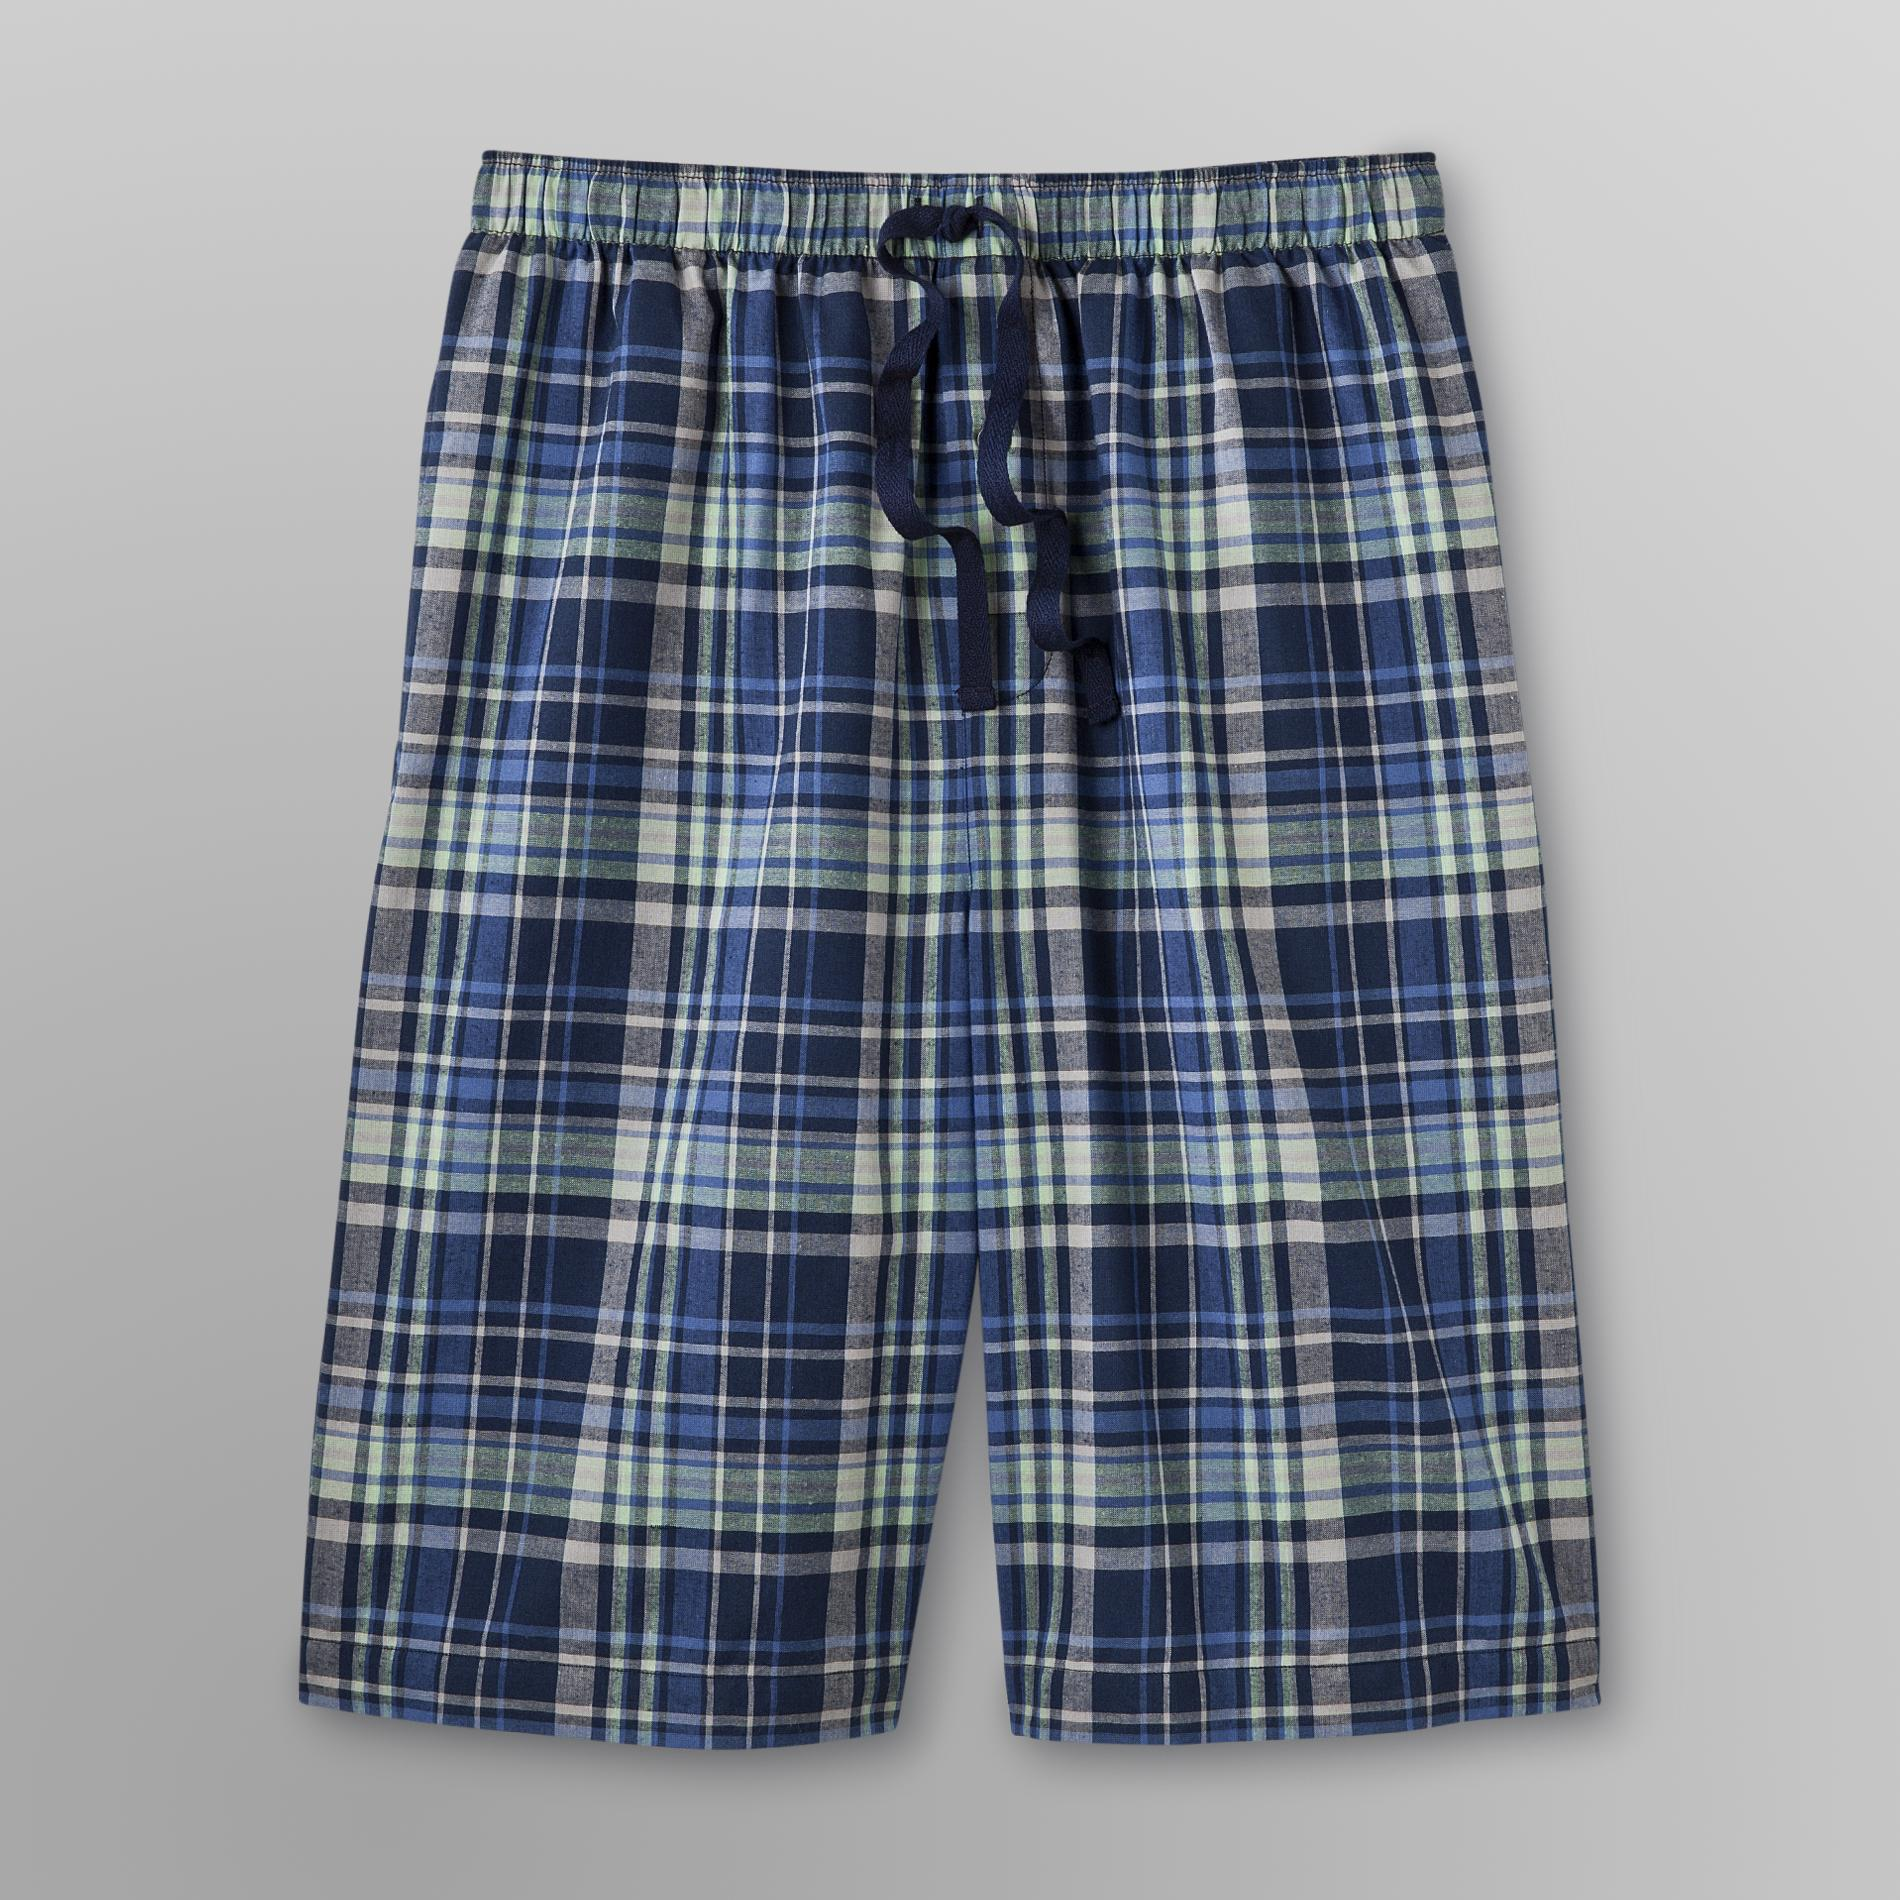 Basic Editions Men's Poplin Sleep Shorts - Plaid at Kmart.com